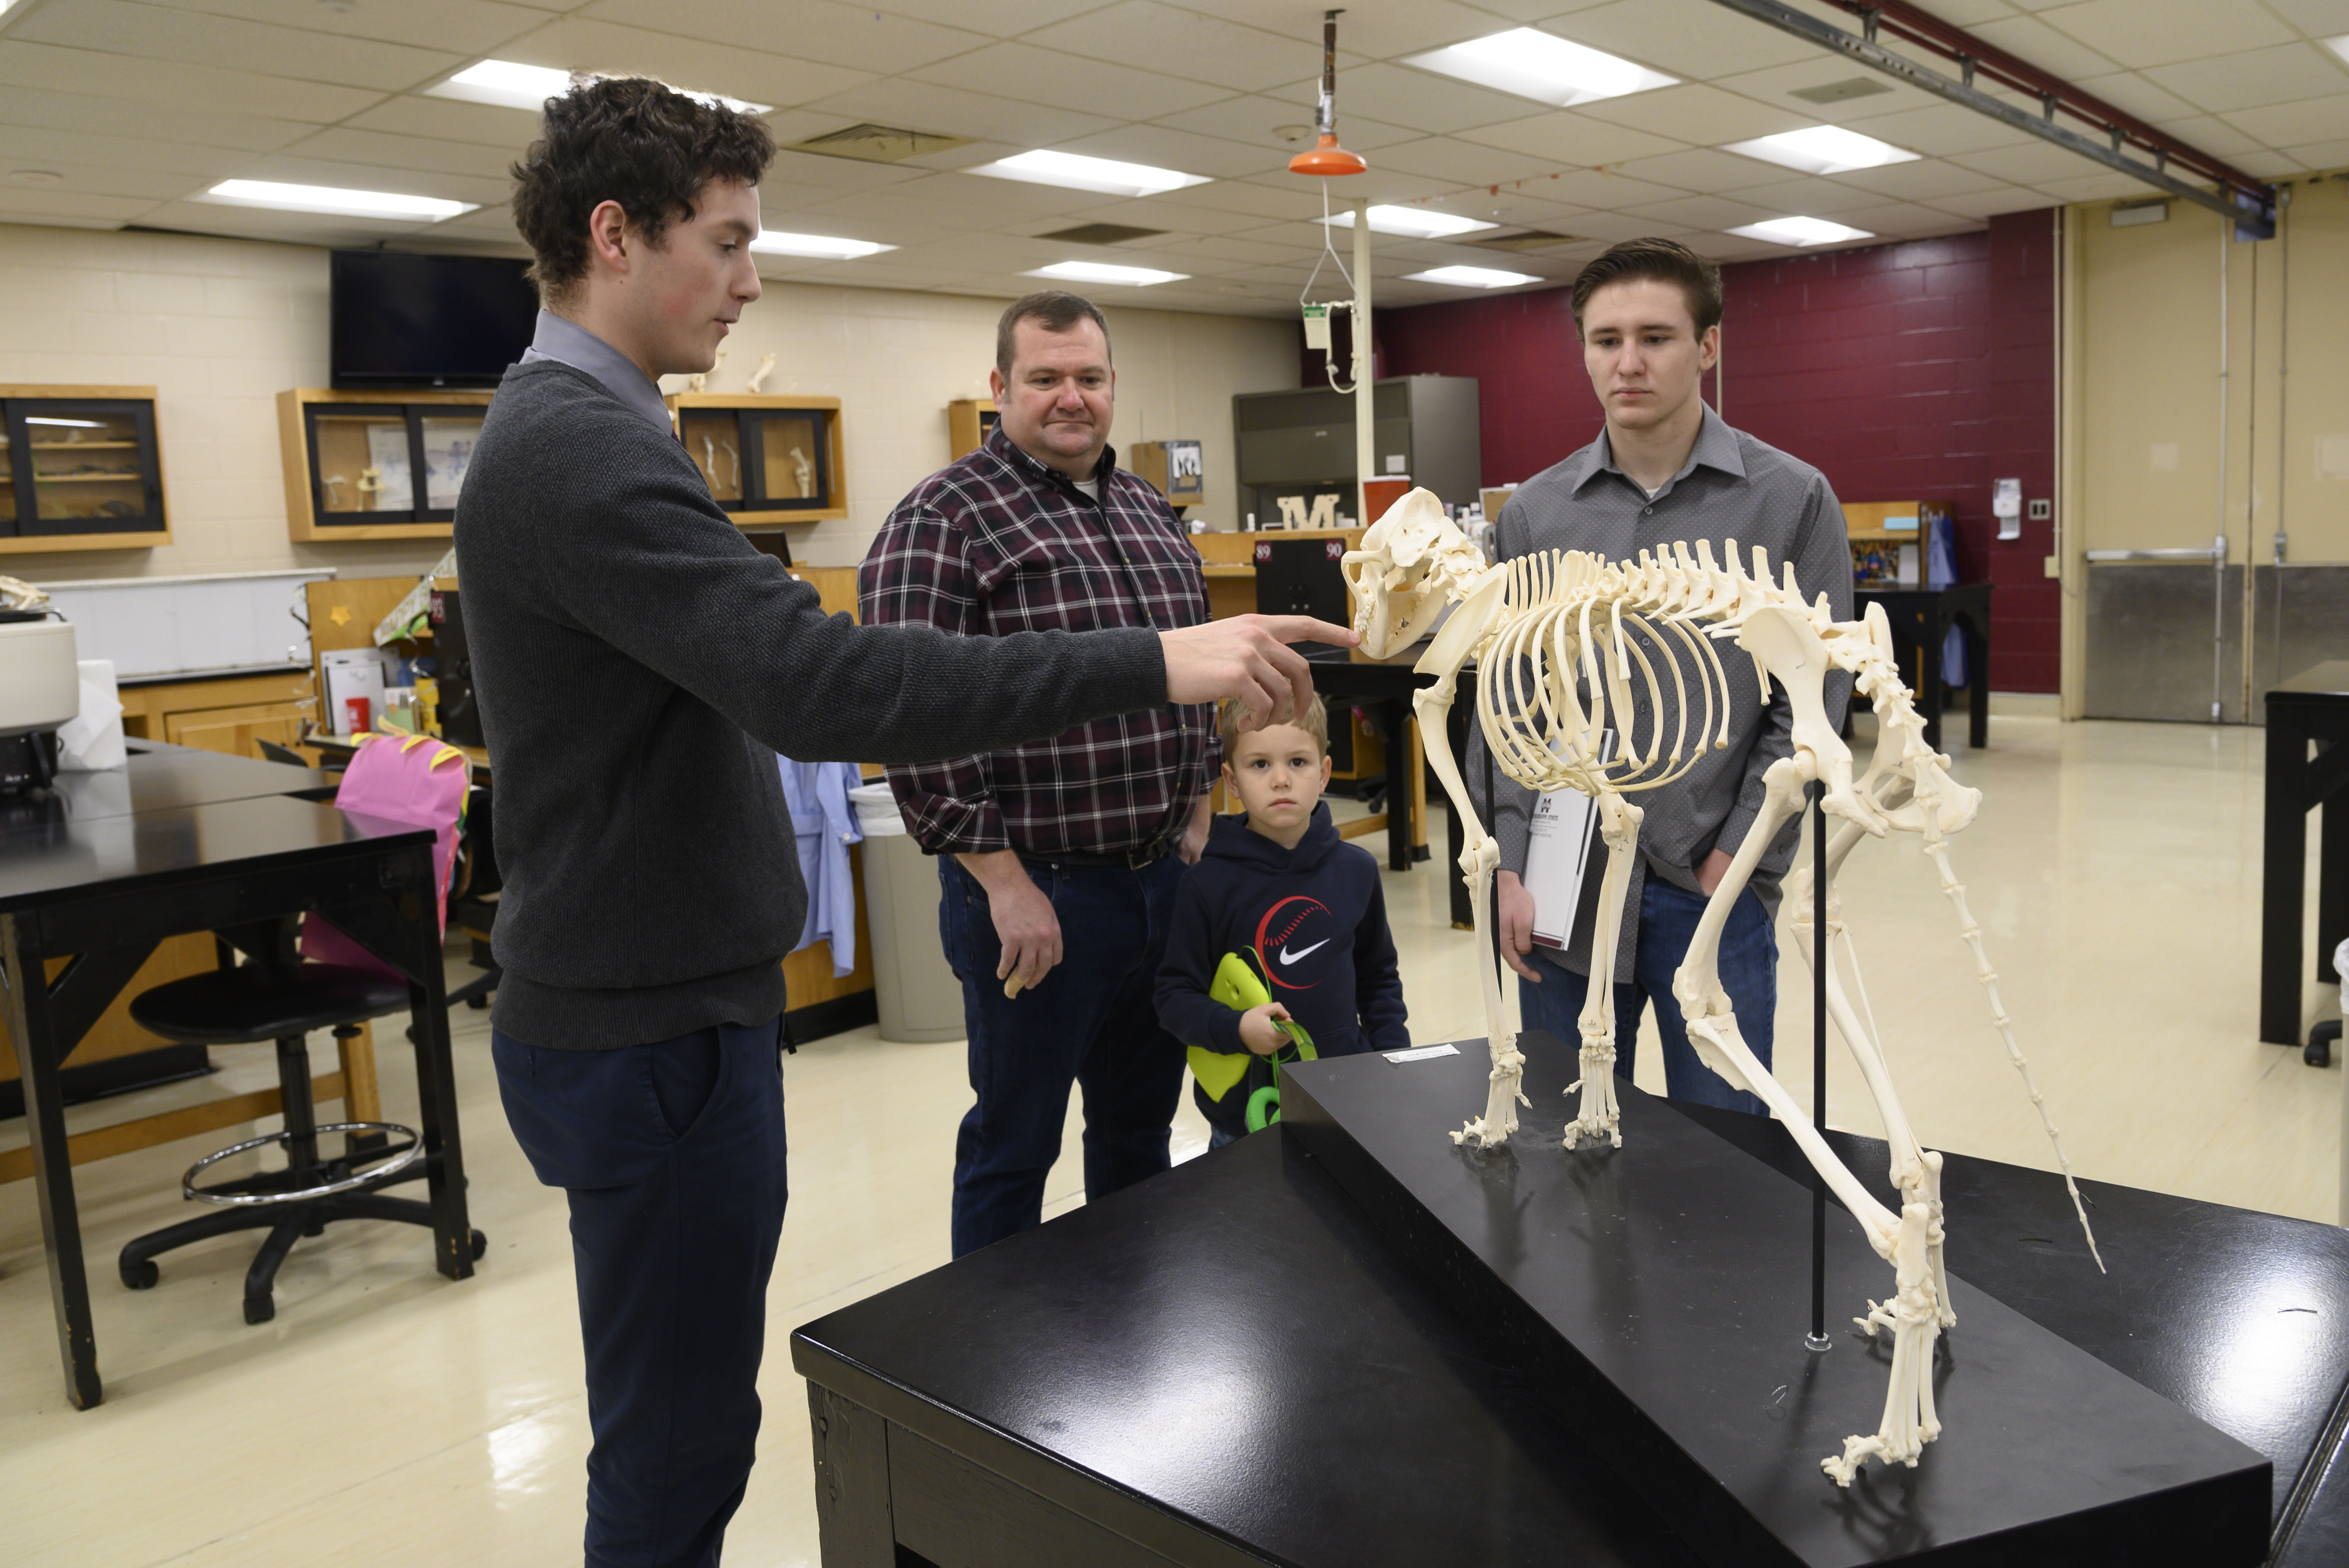 A prospective student and father look at a horse skeleton model